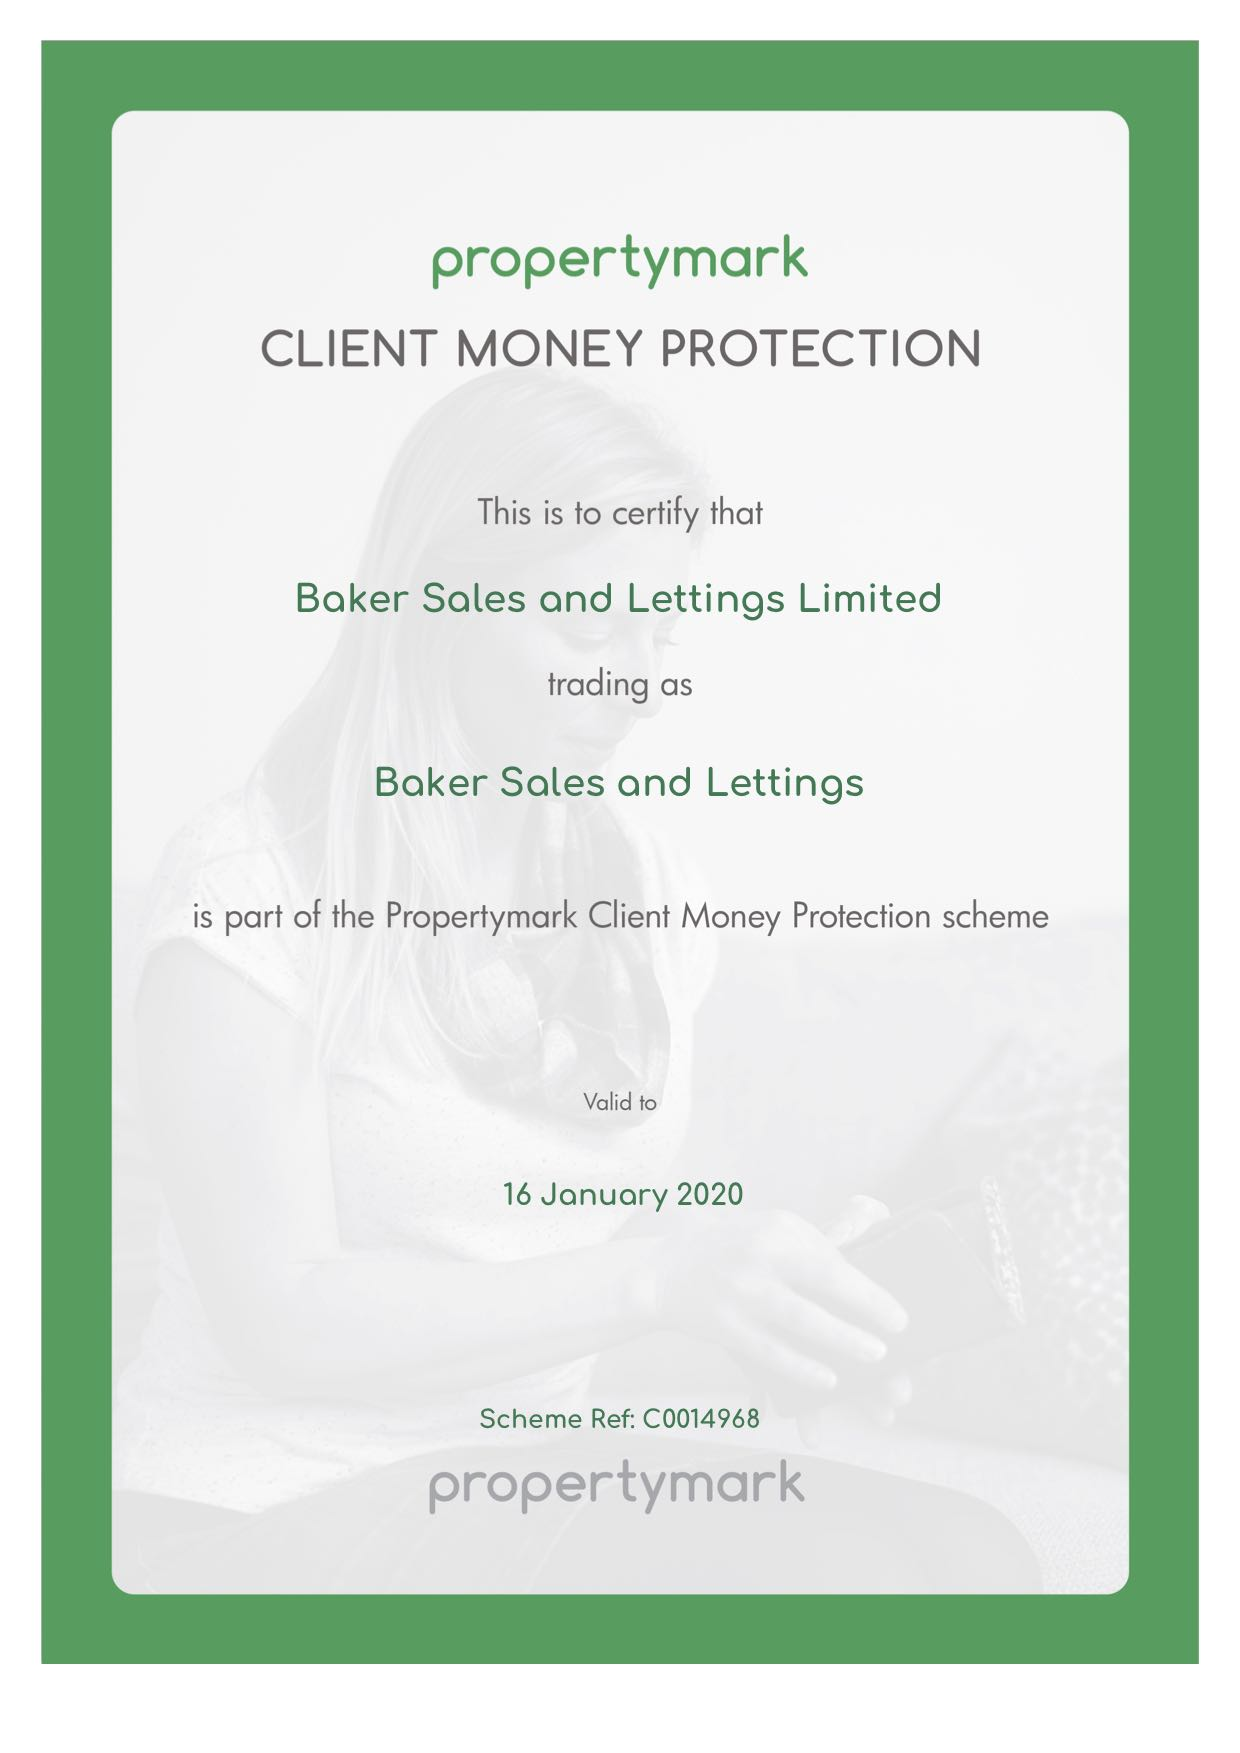 JPEG Client Money Protection Certificate Email